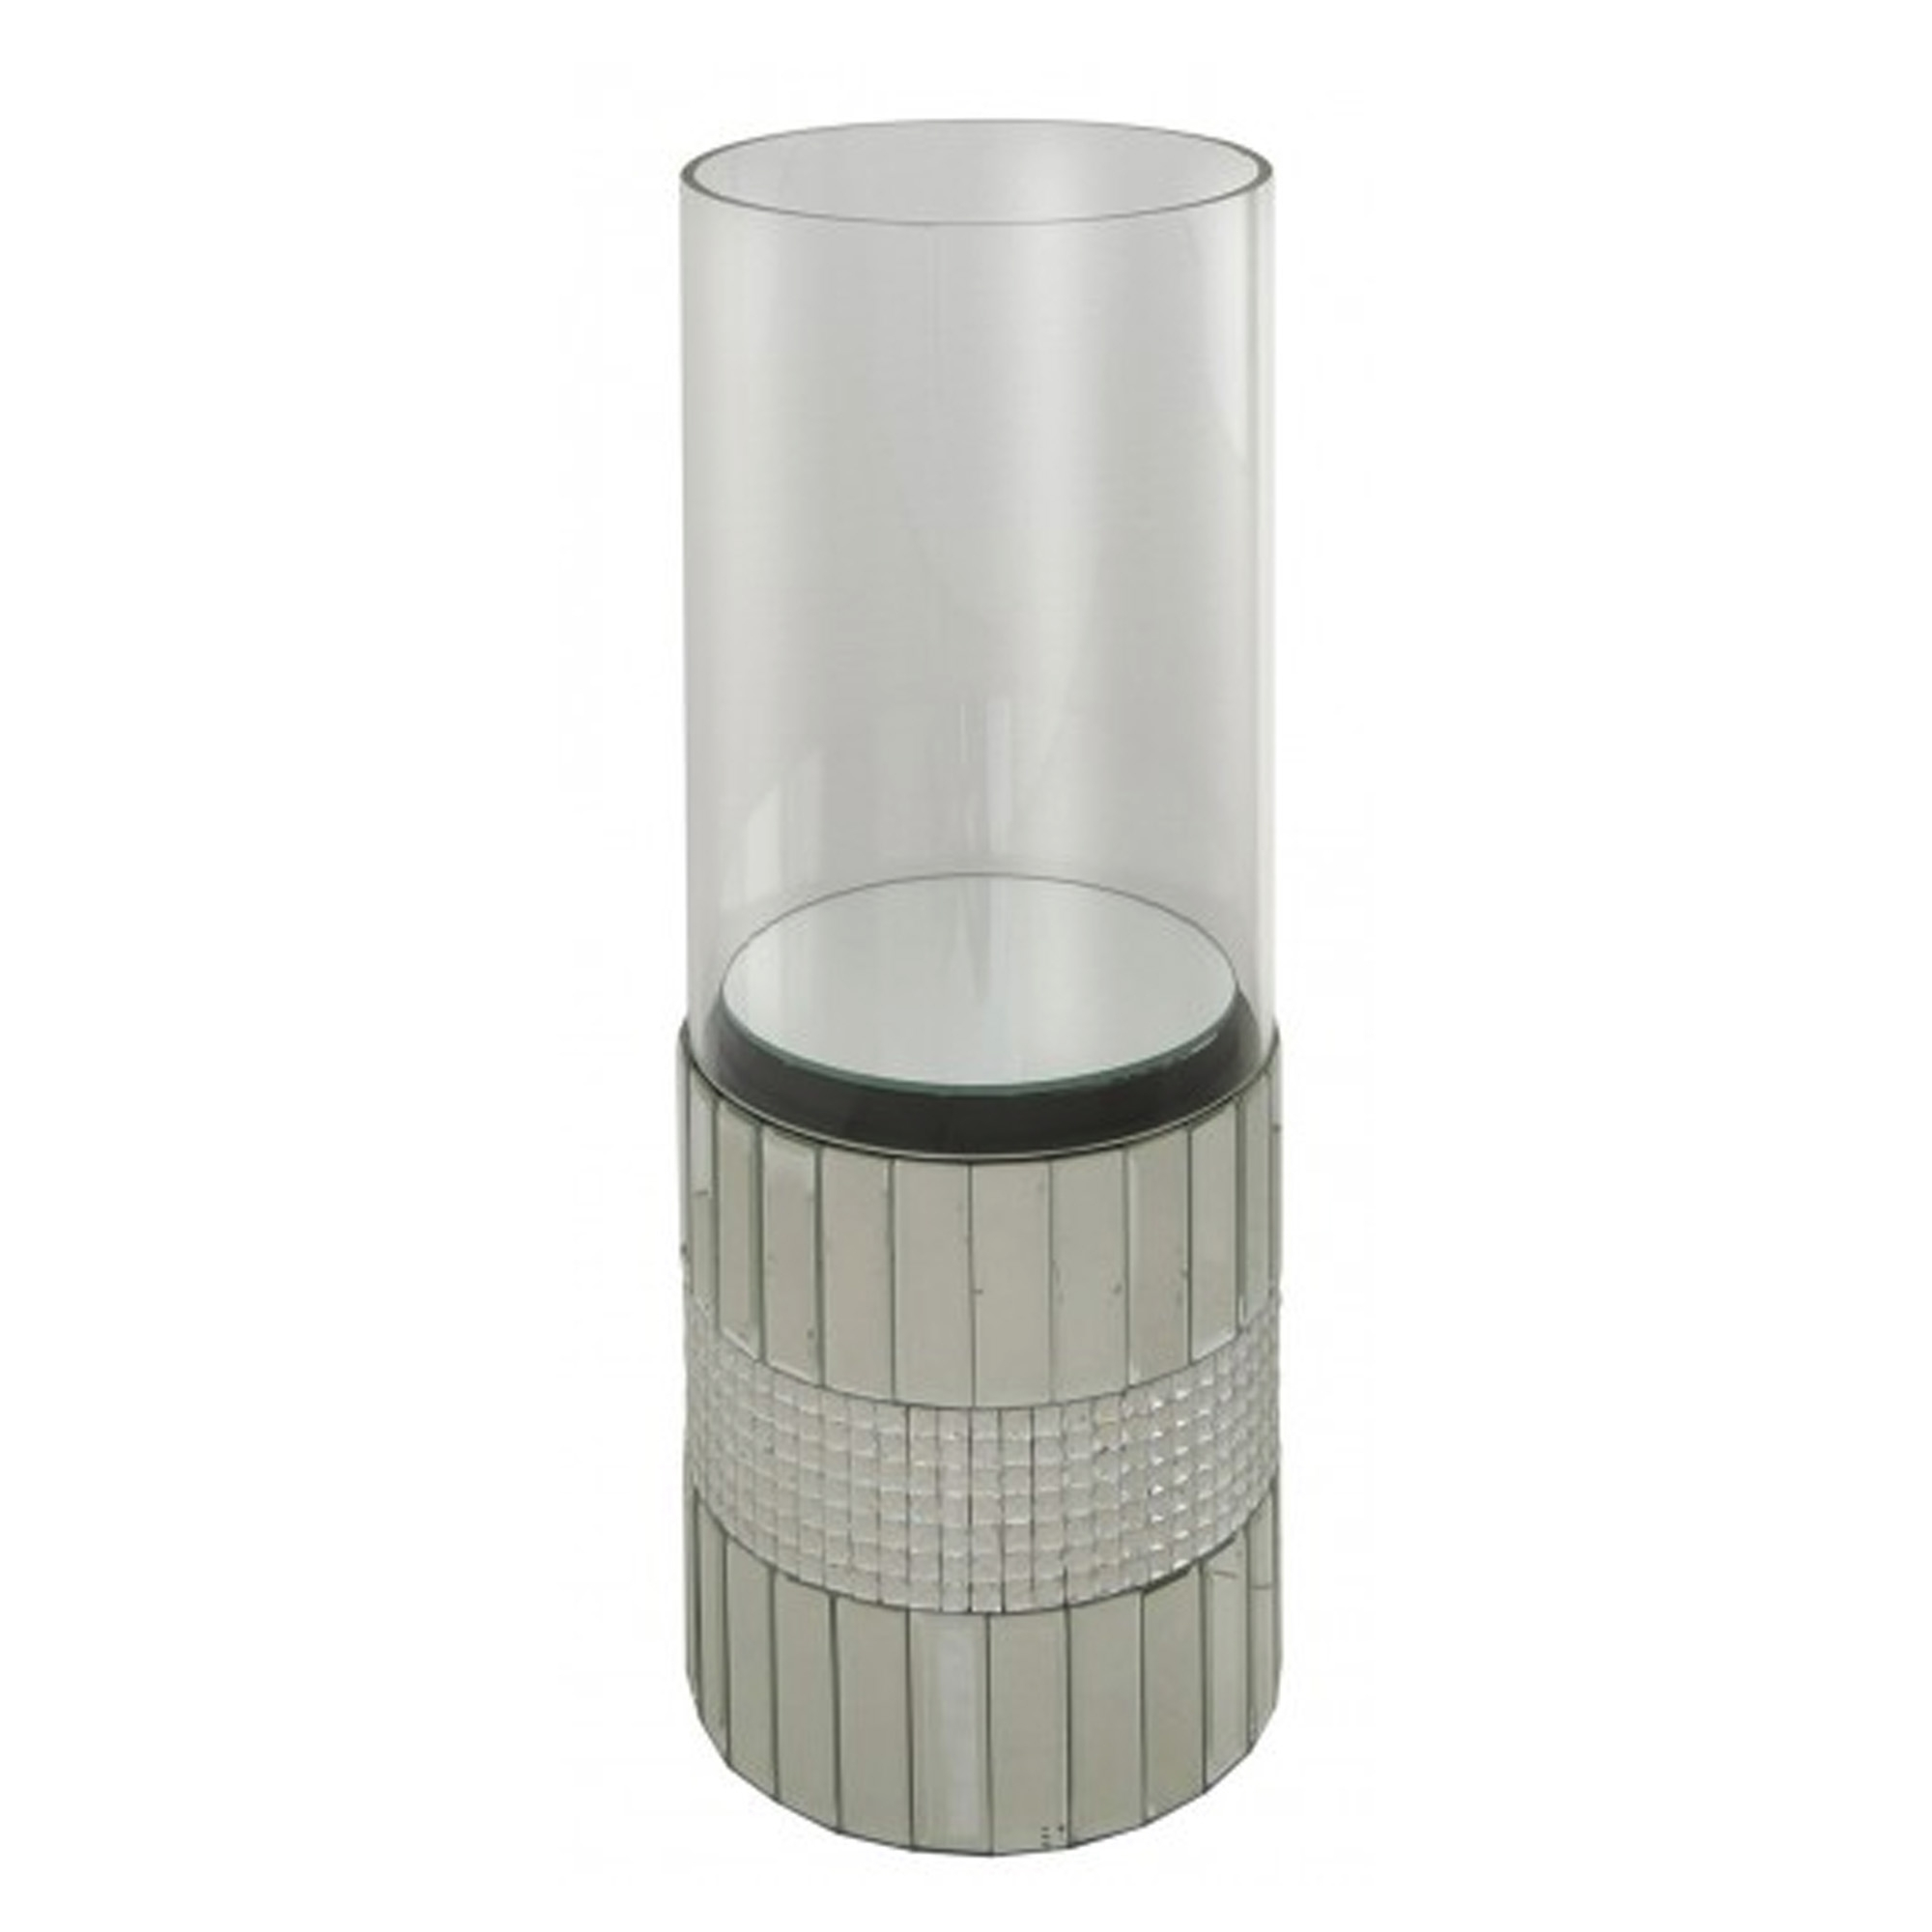 Large floor standing candle holder